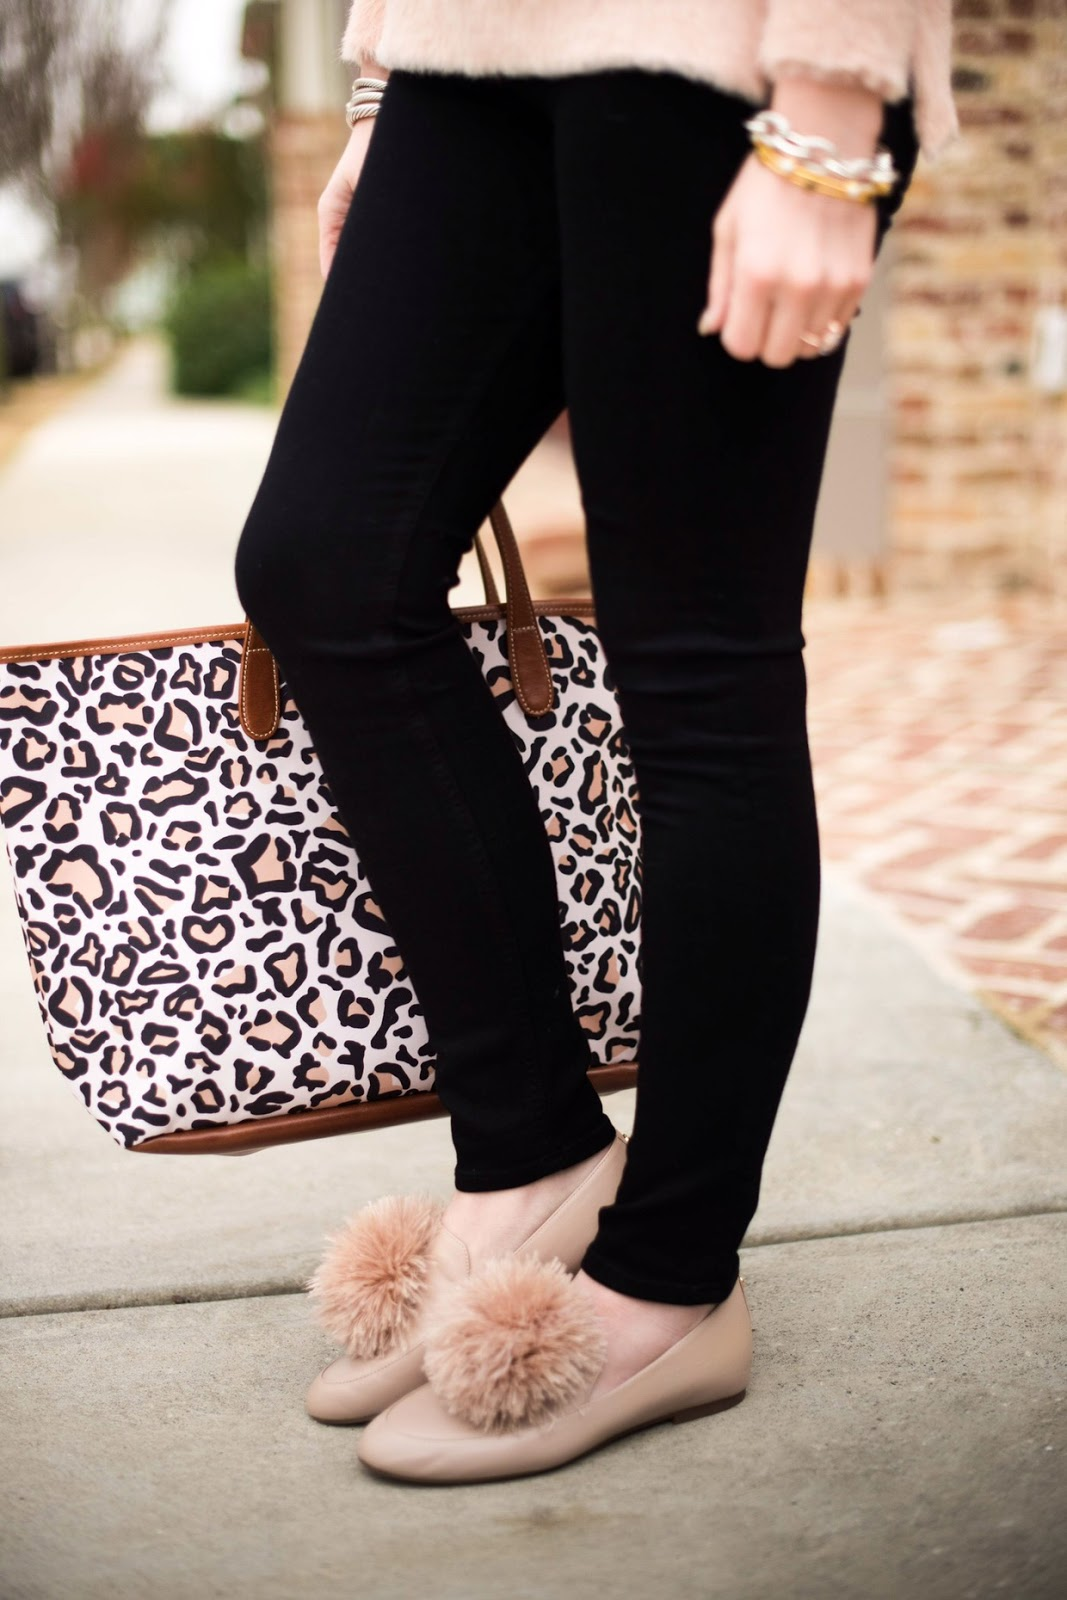 Faux Fur Pom Flats - SOMETHING DELIGHTFUL BLOG